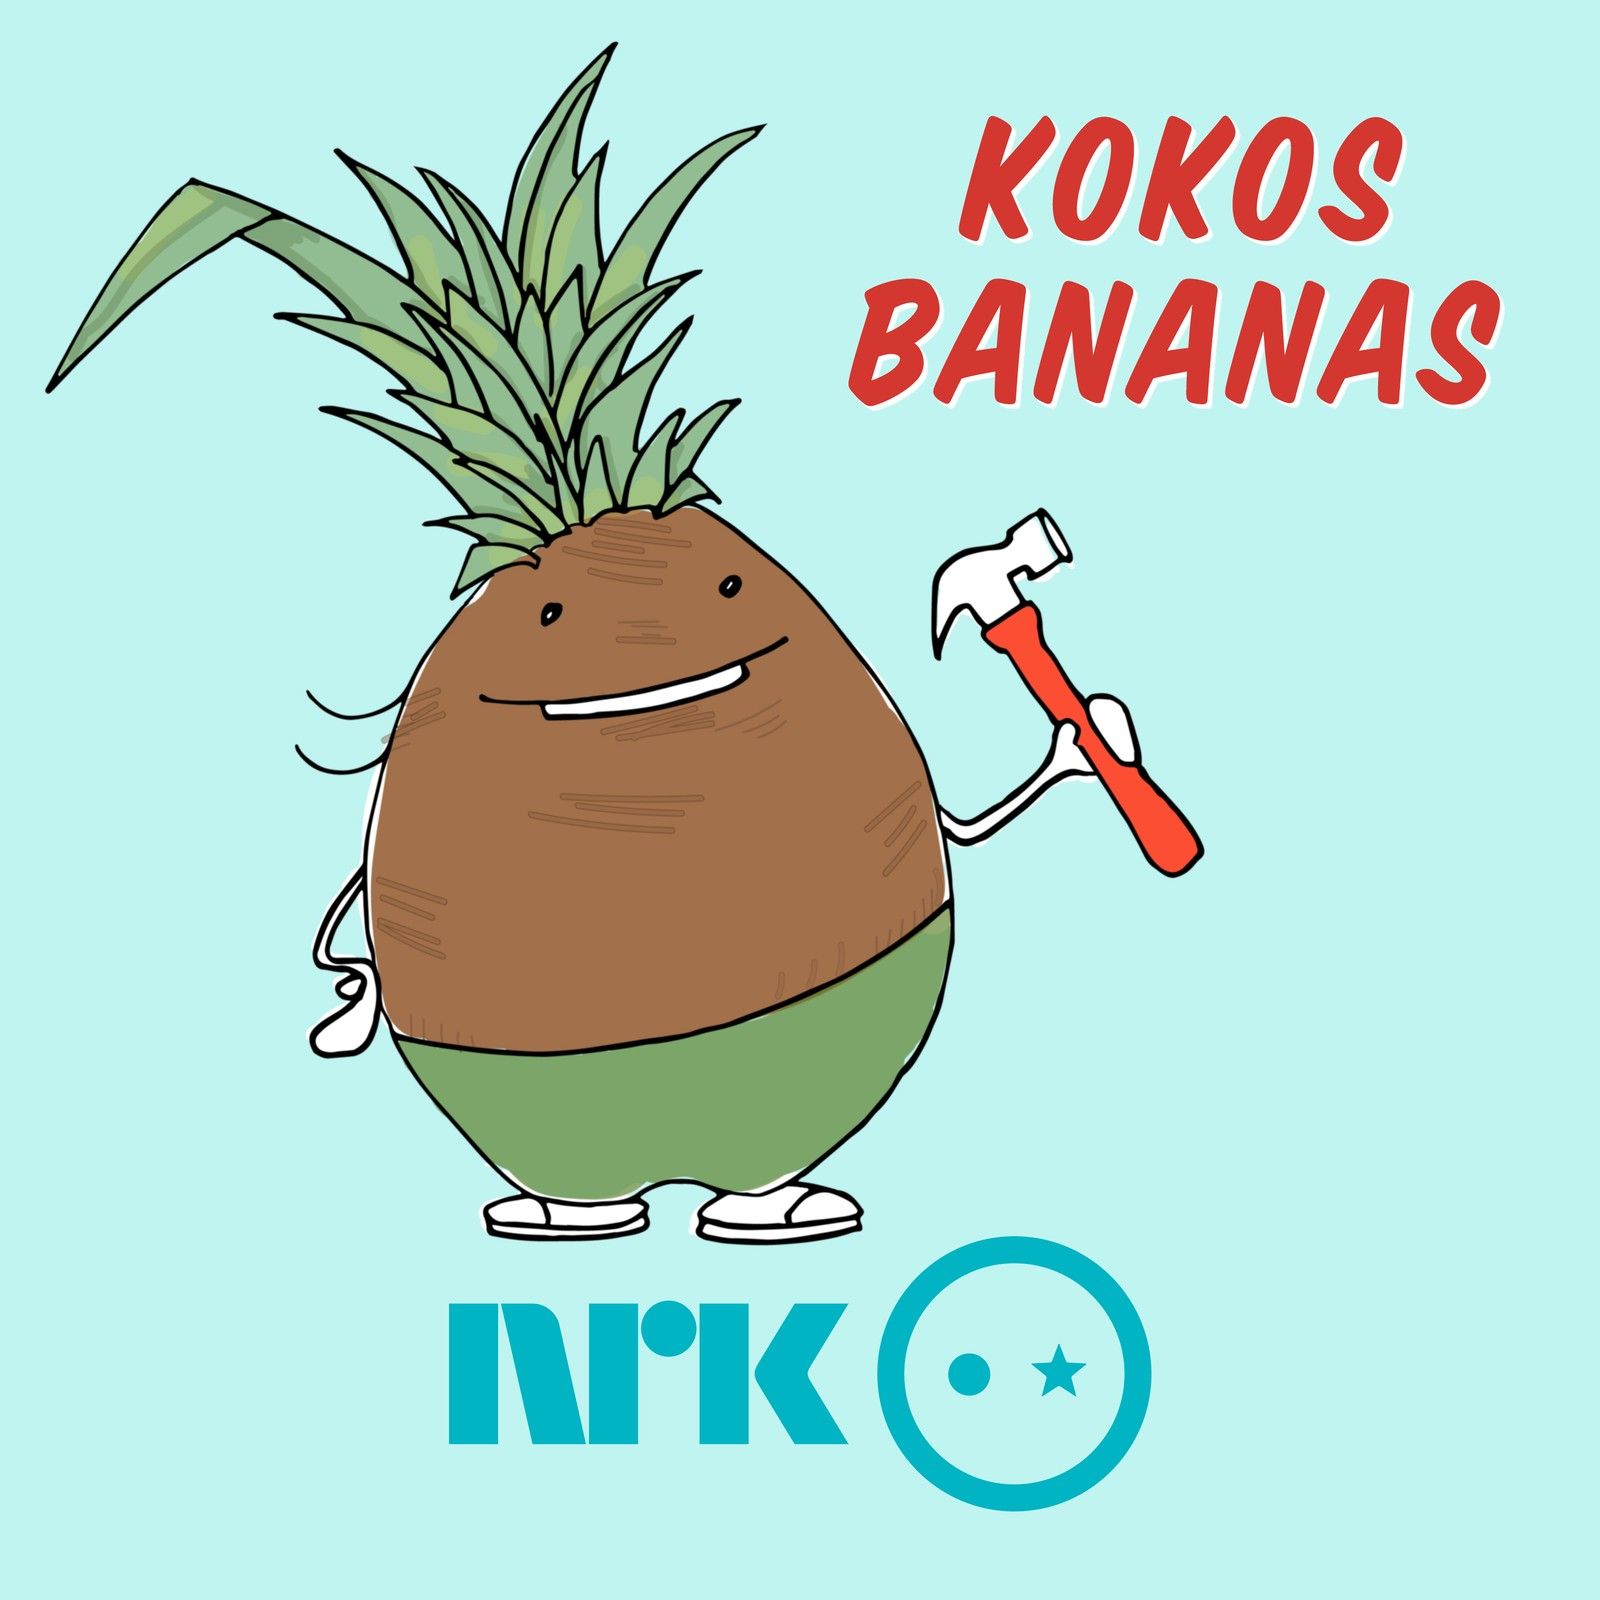 Kokosbananas